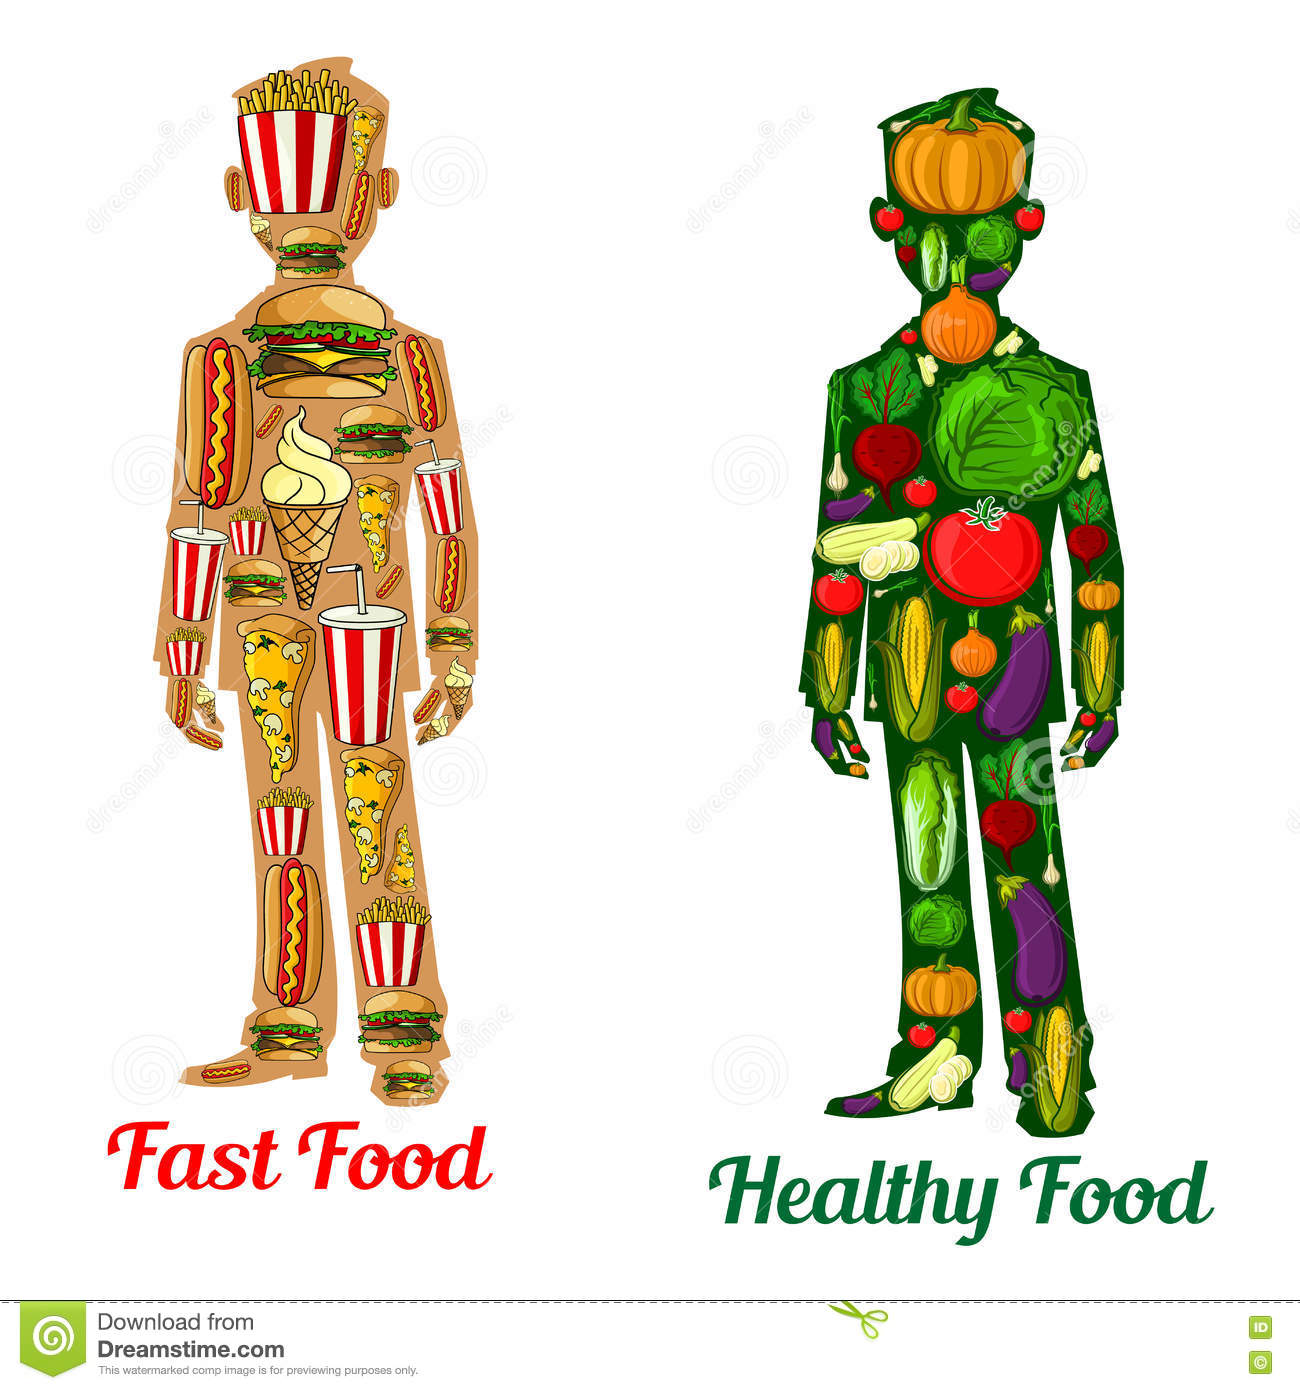 the effects of eating unhealthy foods on our body Health risks related to unhealthy eating include over-consumption,   recommendations109 however, access to unhealthy food options are.